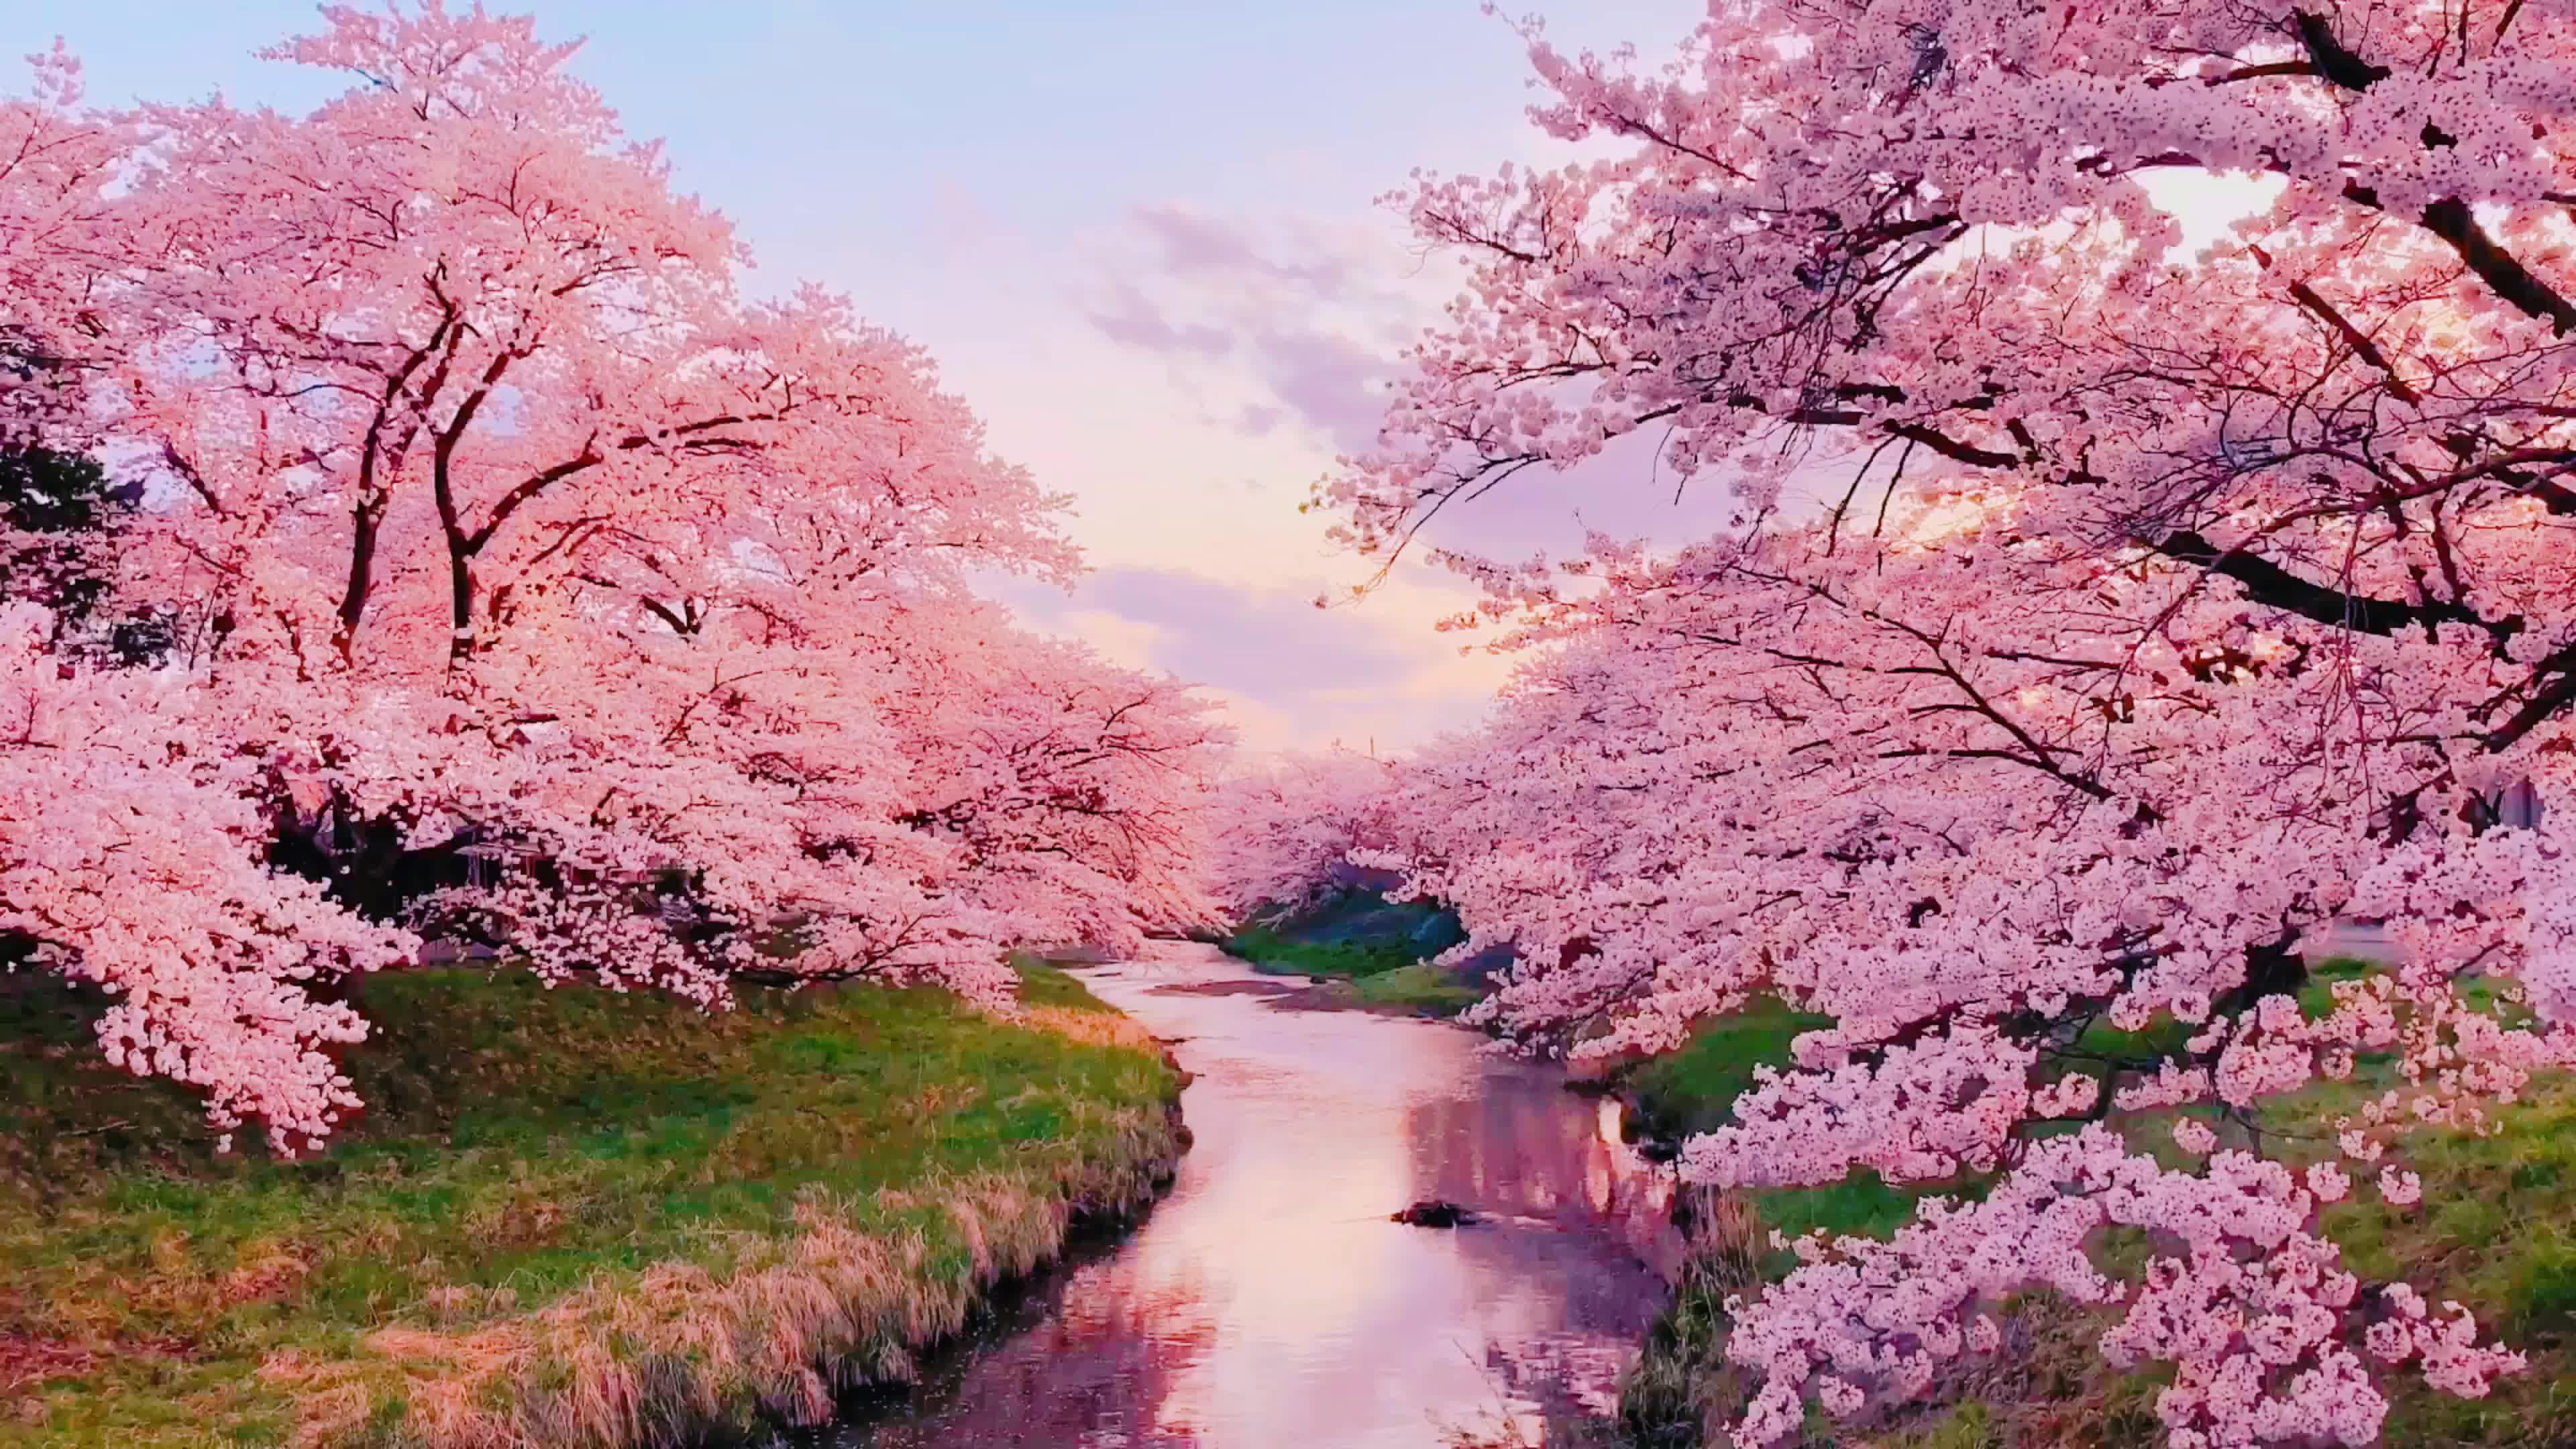 Dreamy Cherry Blossom Trees 1626045 Free Hd Video Clips Stock Video Footage